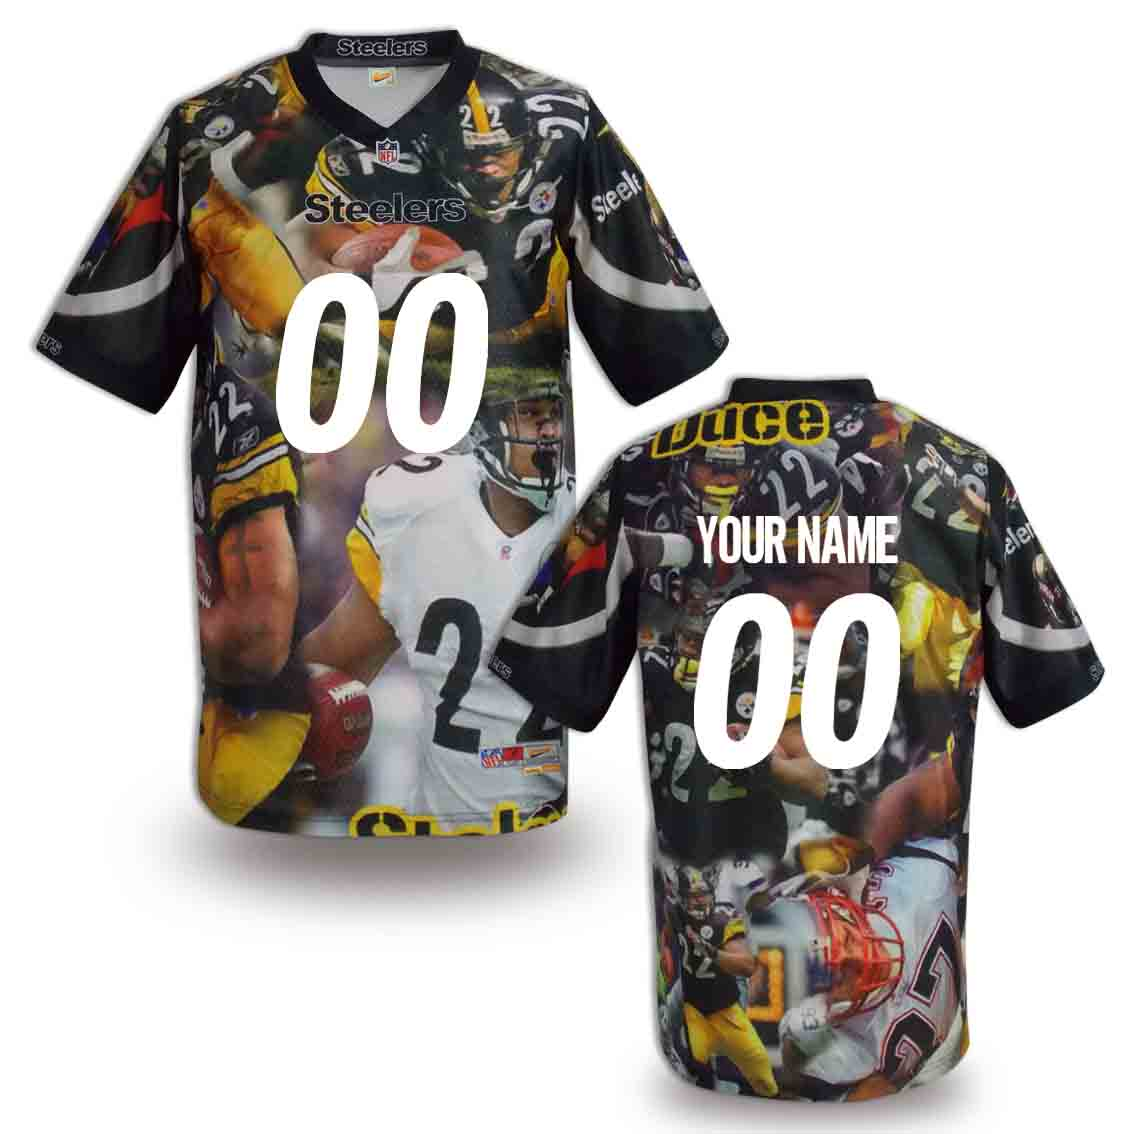 Nike Steelers Customized Fashion Stitched Jerseys04